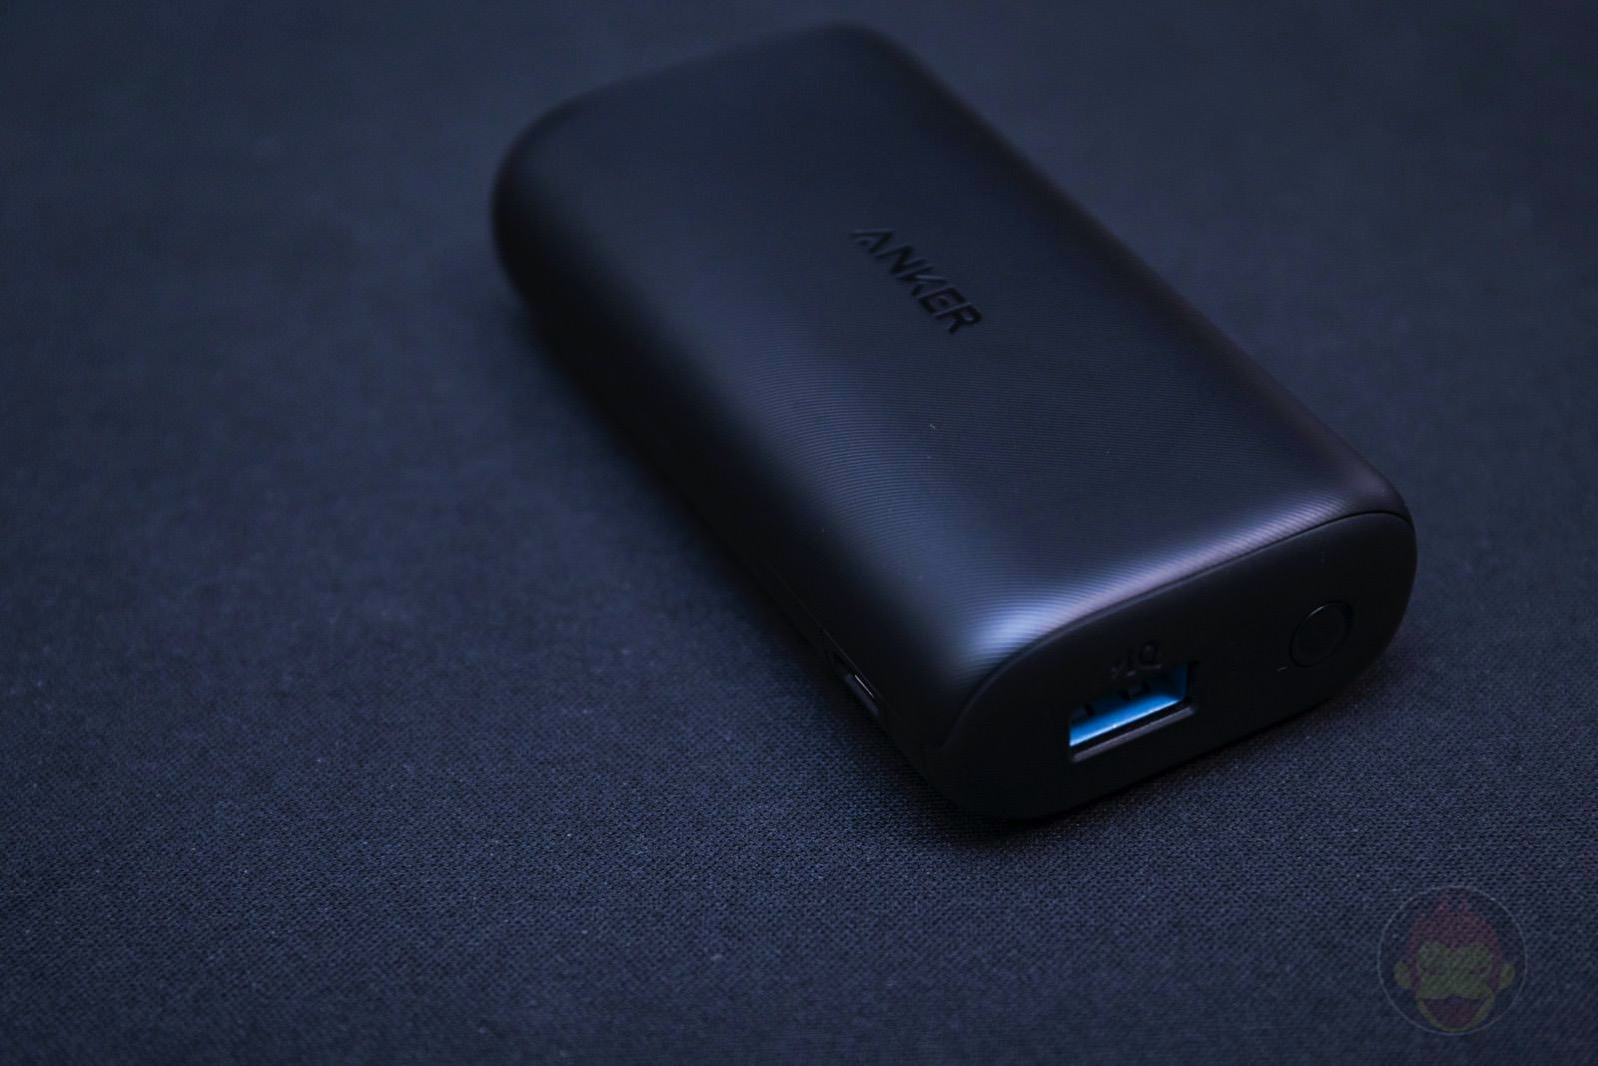 Anker-PowerCore-10000-Redux-Review-02.jpg